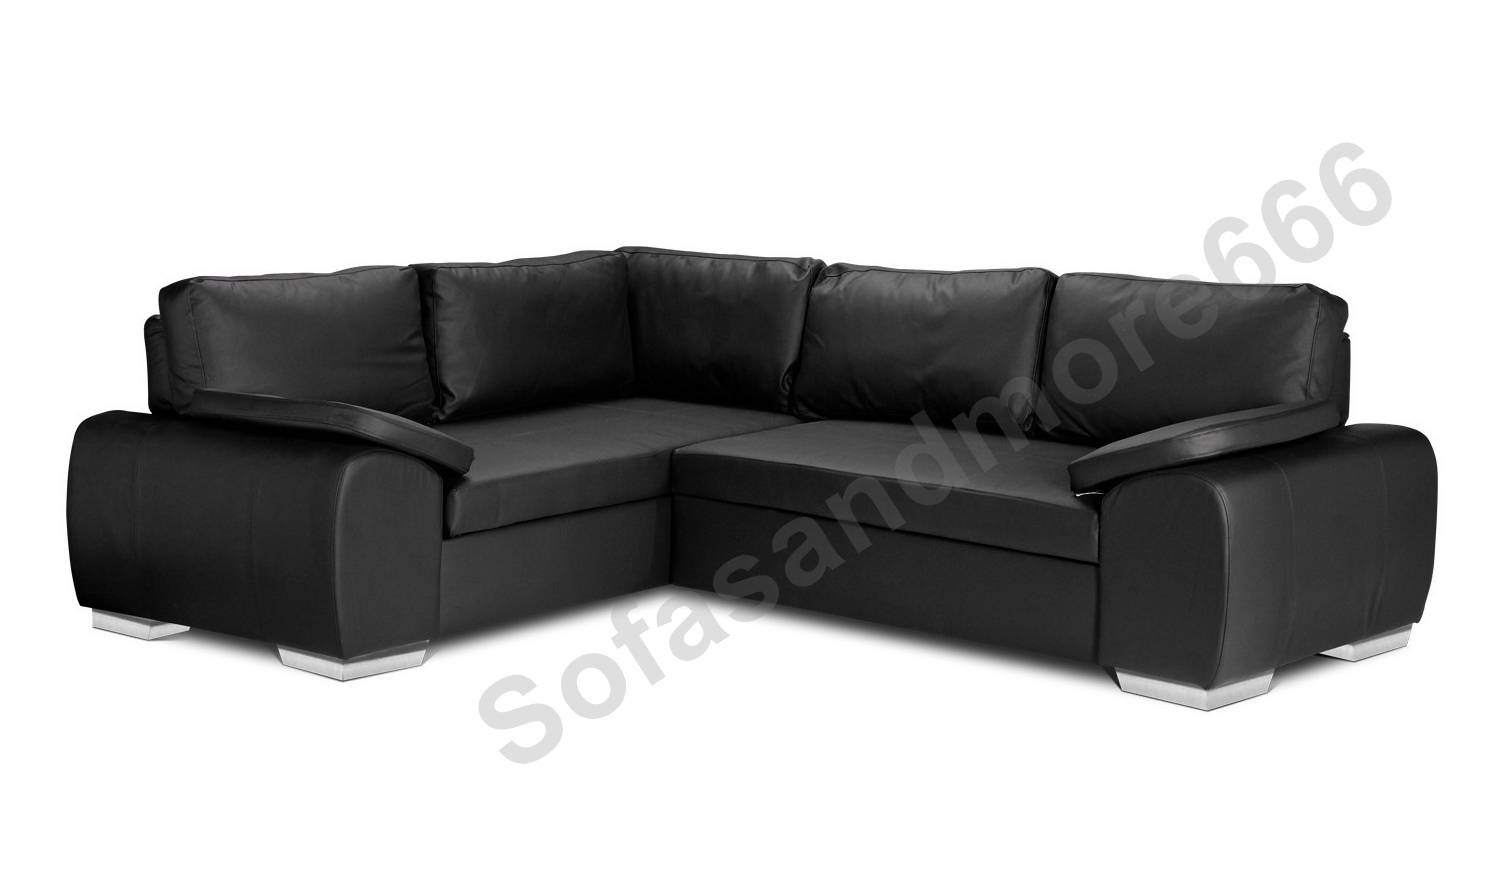 Brand New Enzo Corner Sofa Bed With Storage Black Brown Cream Faux with regard to Leather Corner Sofa Bed (Image 4 of 30)